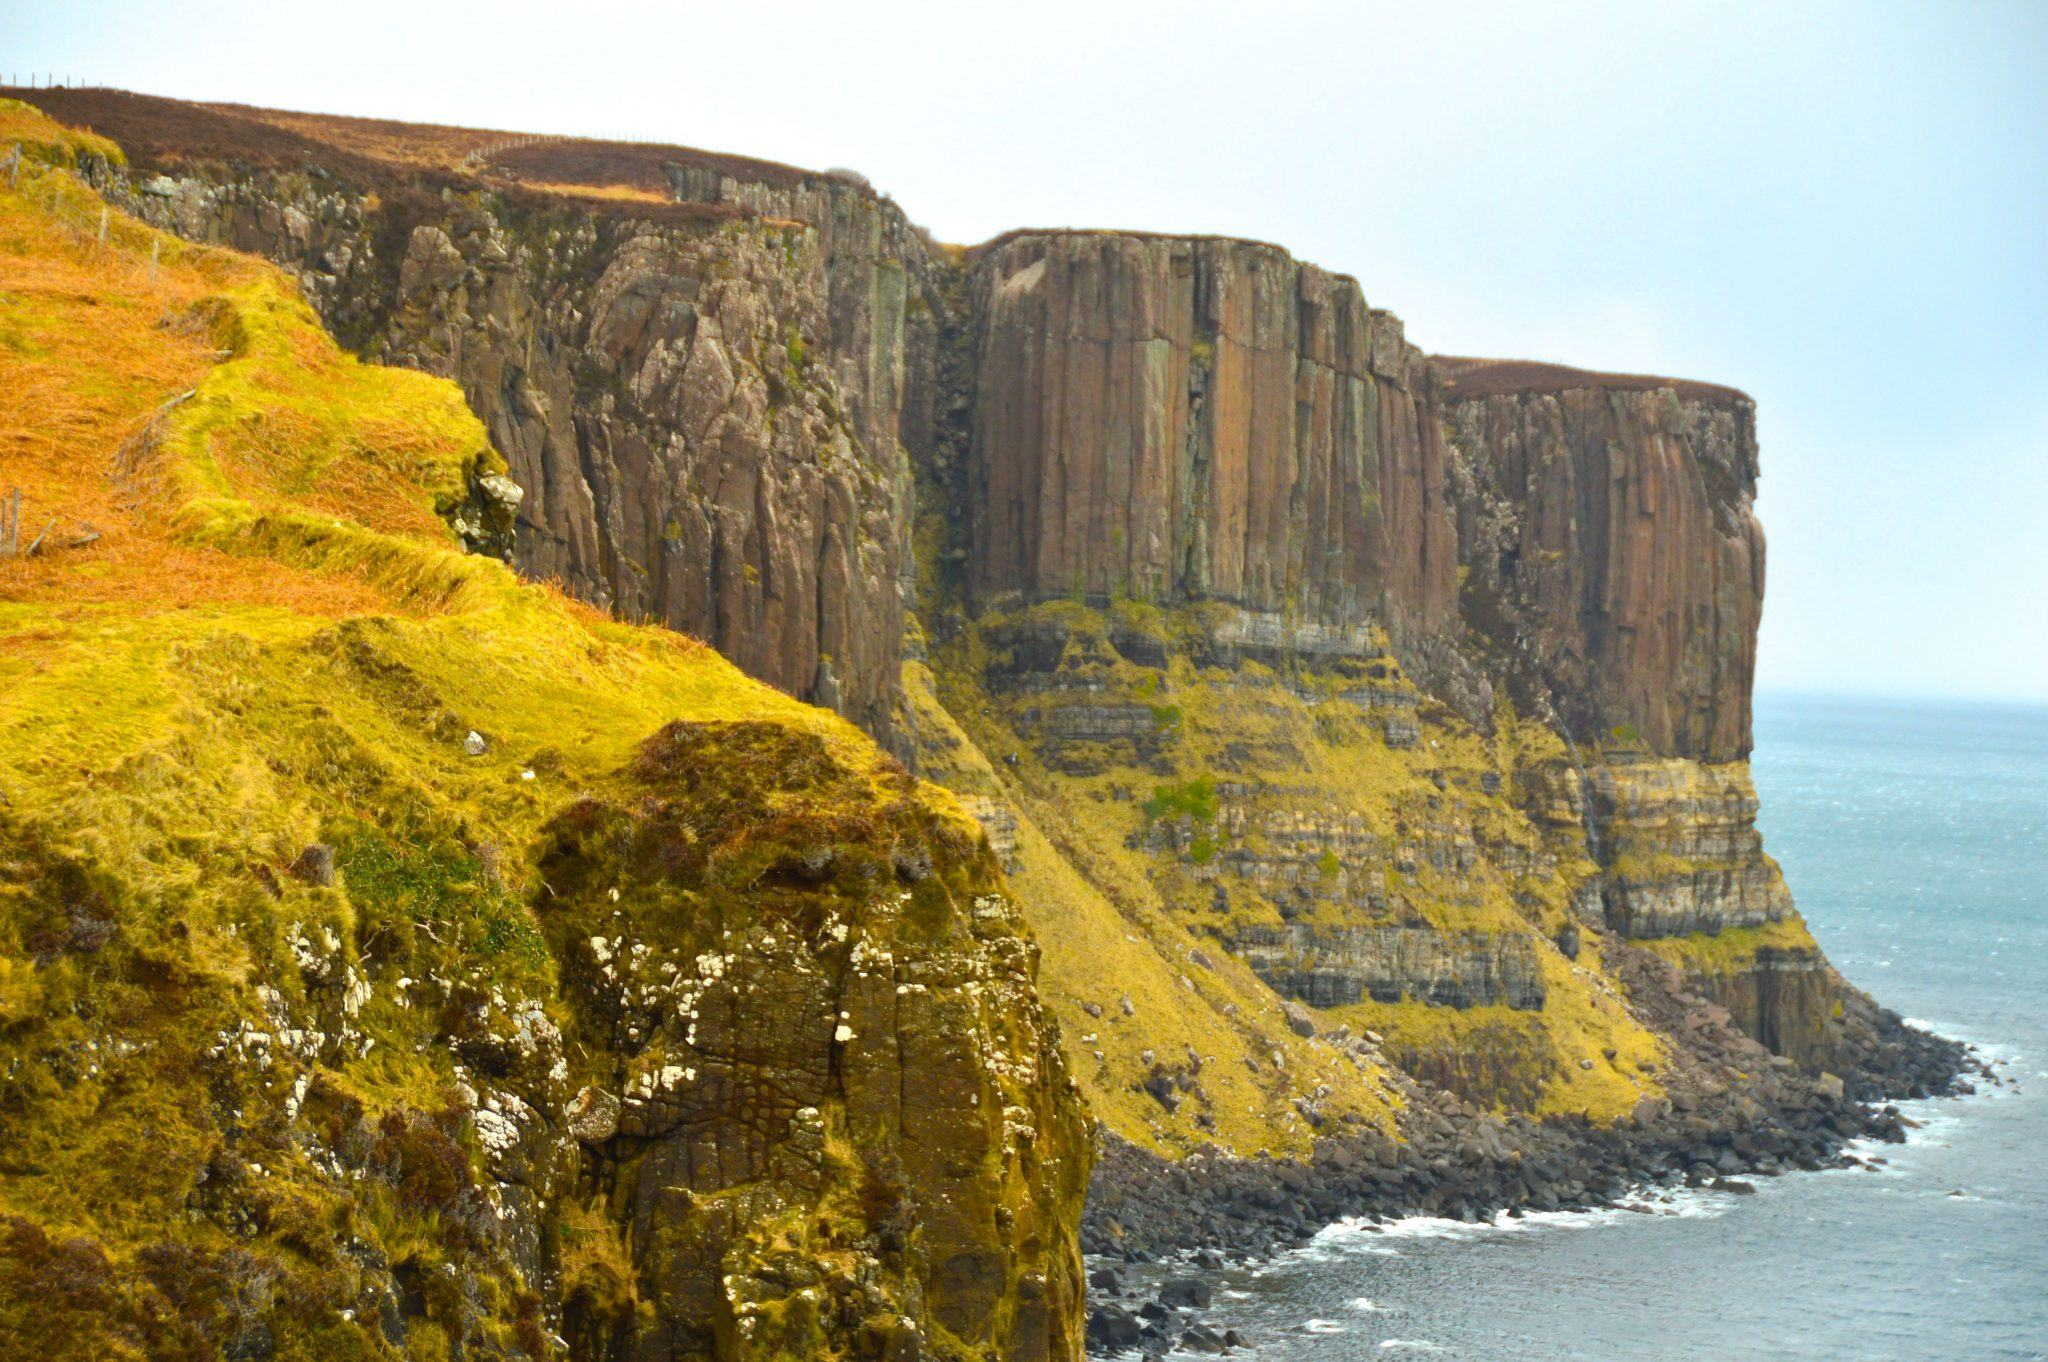 Kilt Rock Isle of Skyes hotels attractions activities